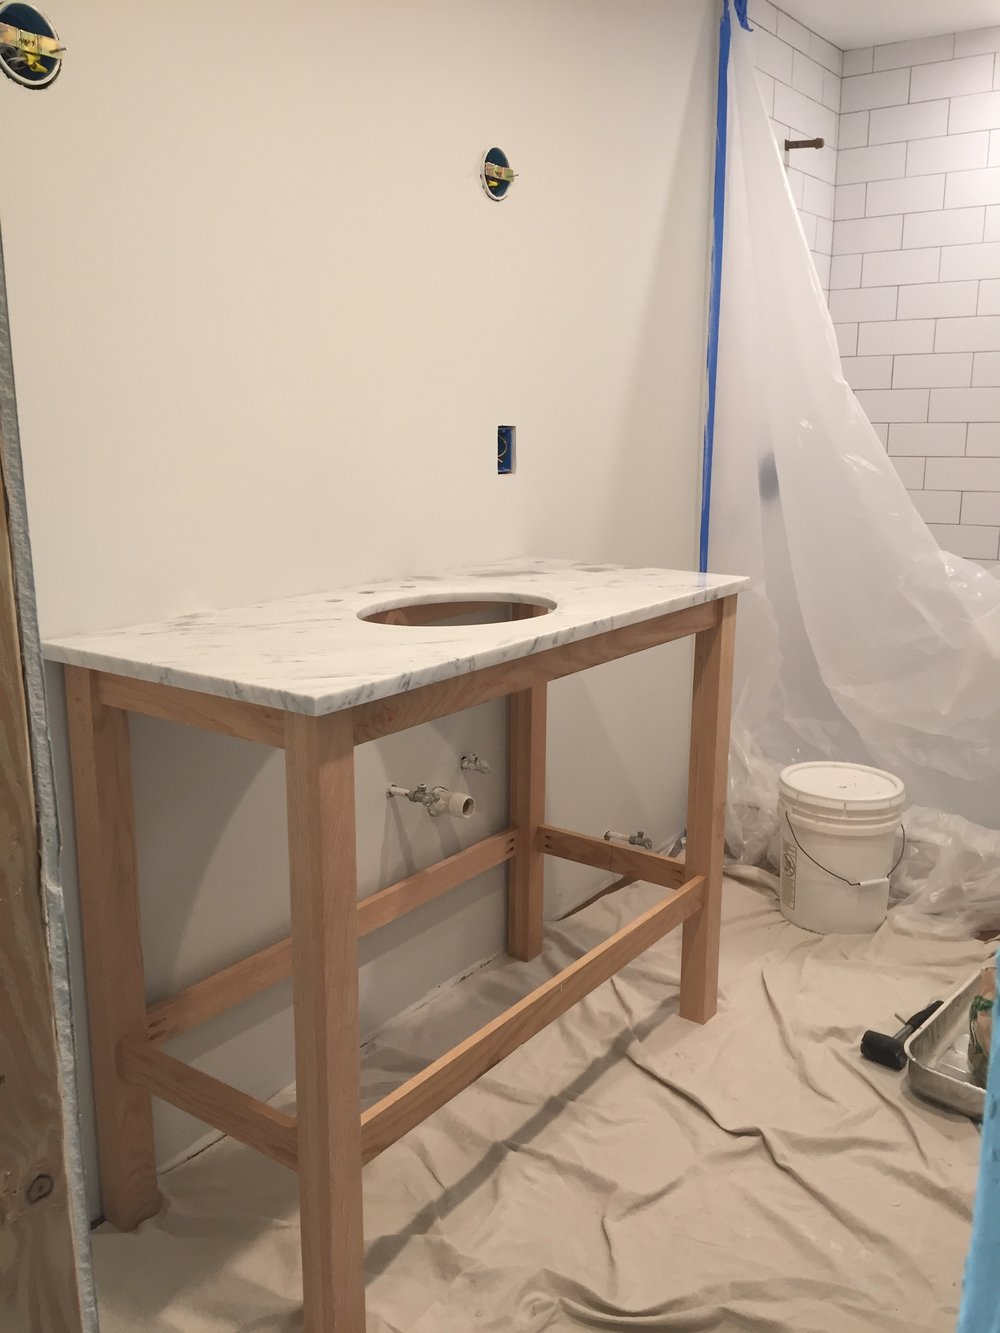 Testing out what the vanity may look like in the bathroom...